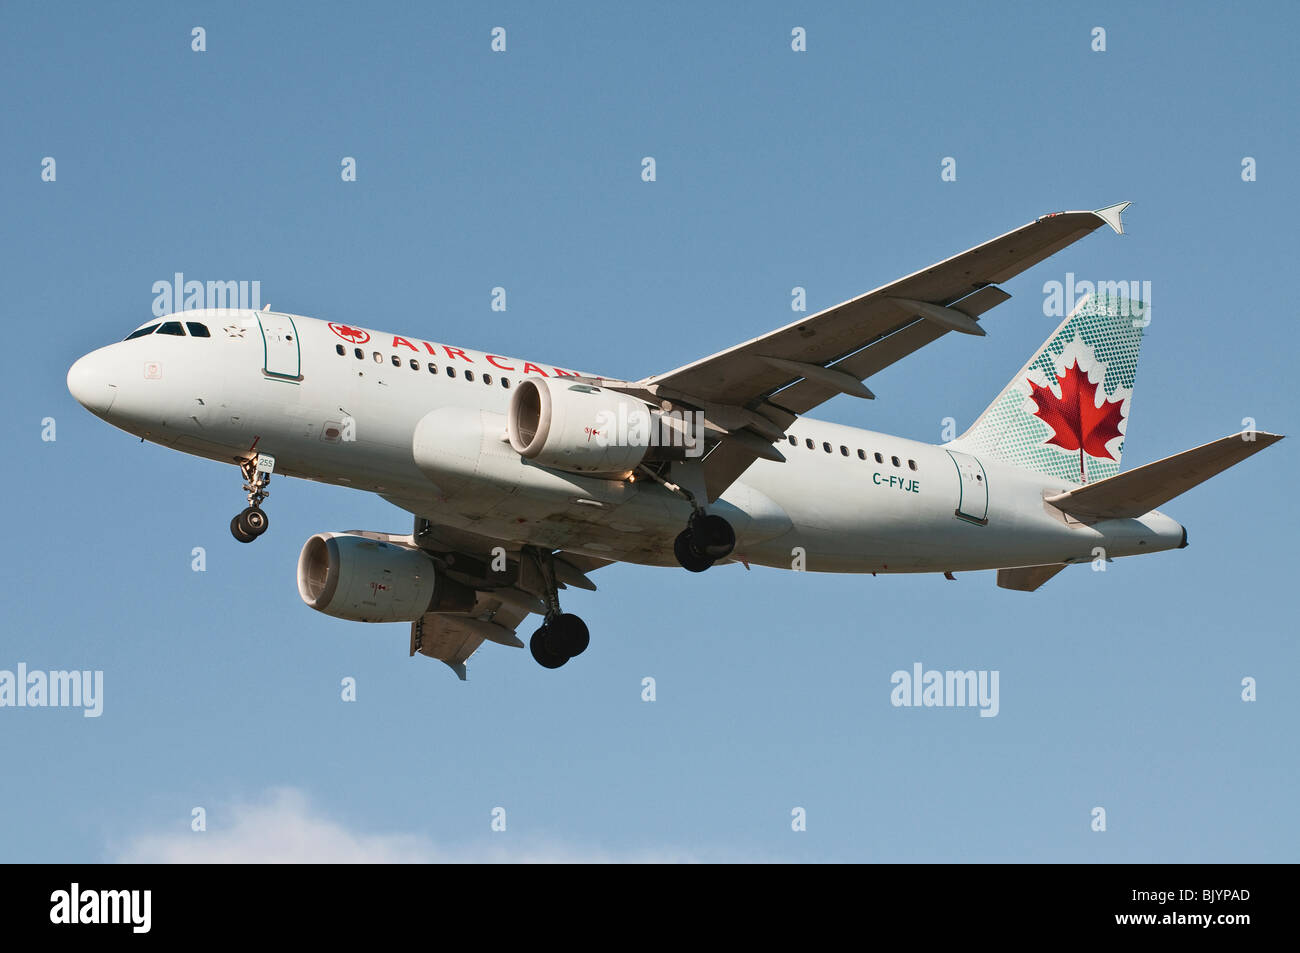 Air Canada Airbus A319 jet airliner on final approach for landing. - Stock Image